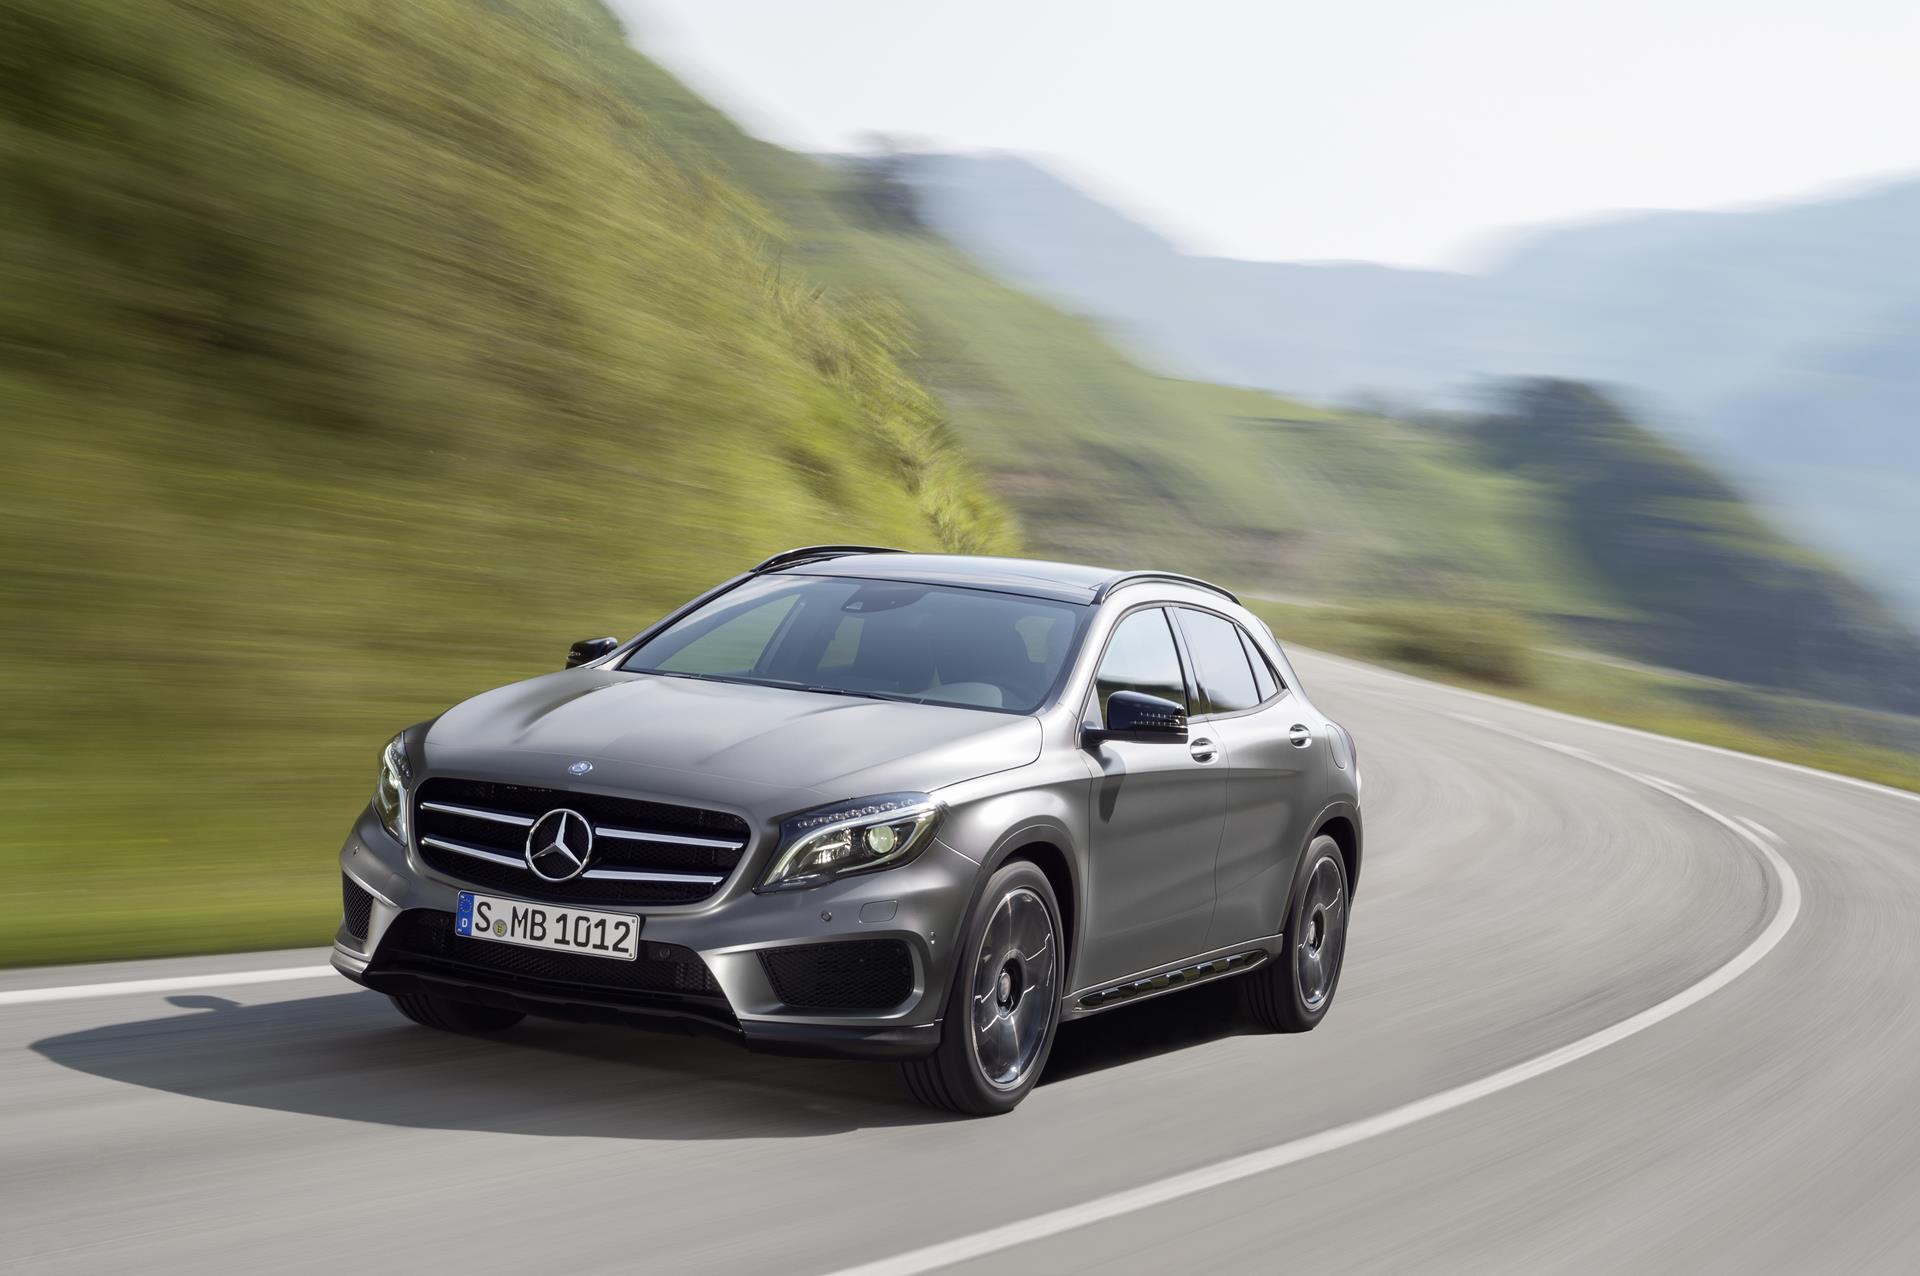 2016 mercedes benz gla class news and information for Mercedes benz gla class price